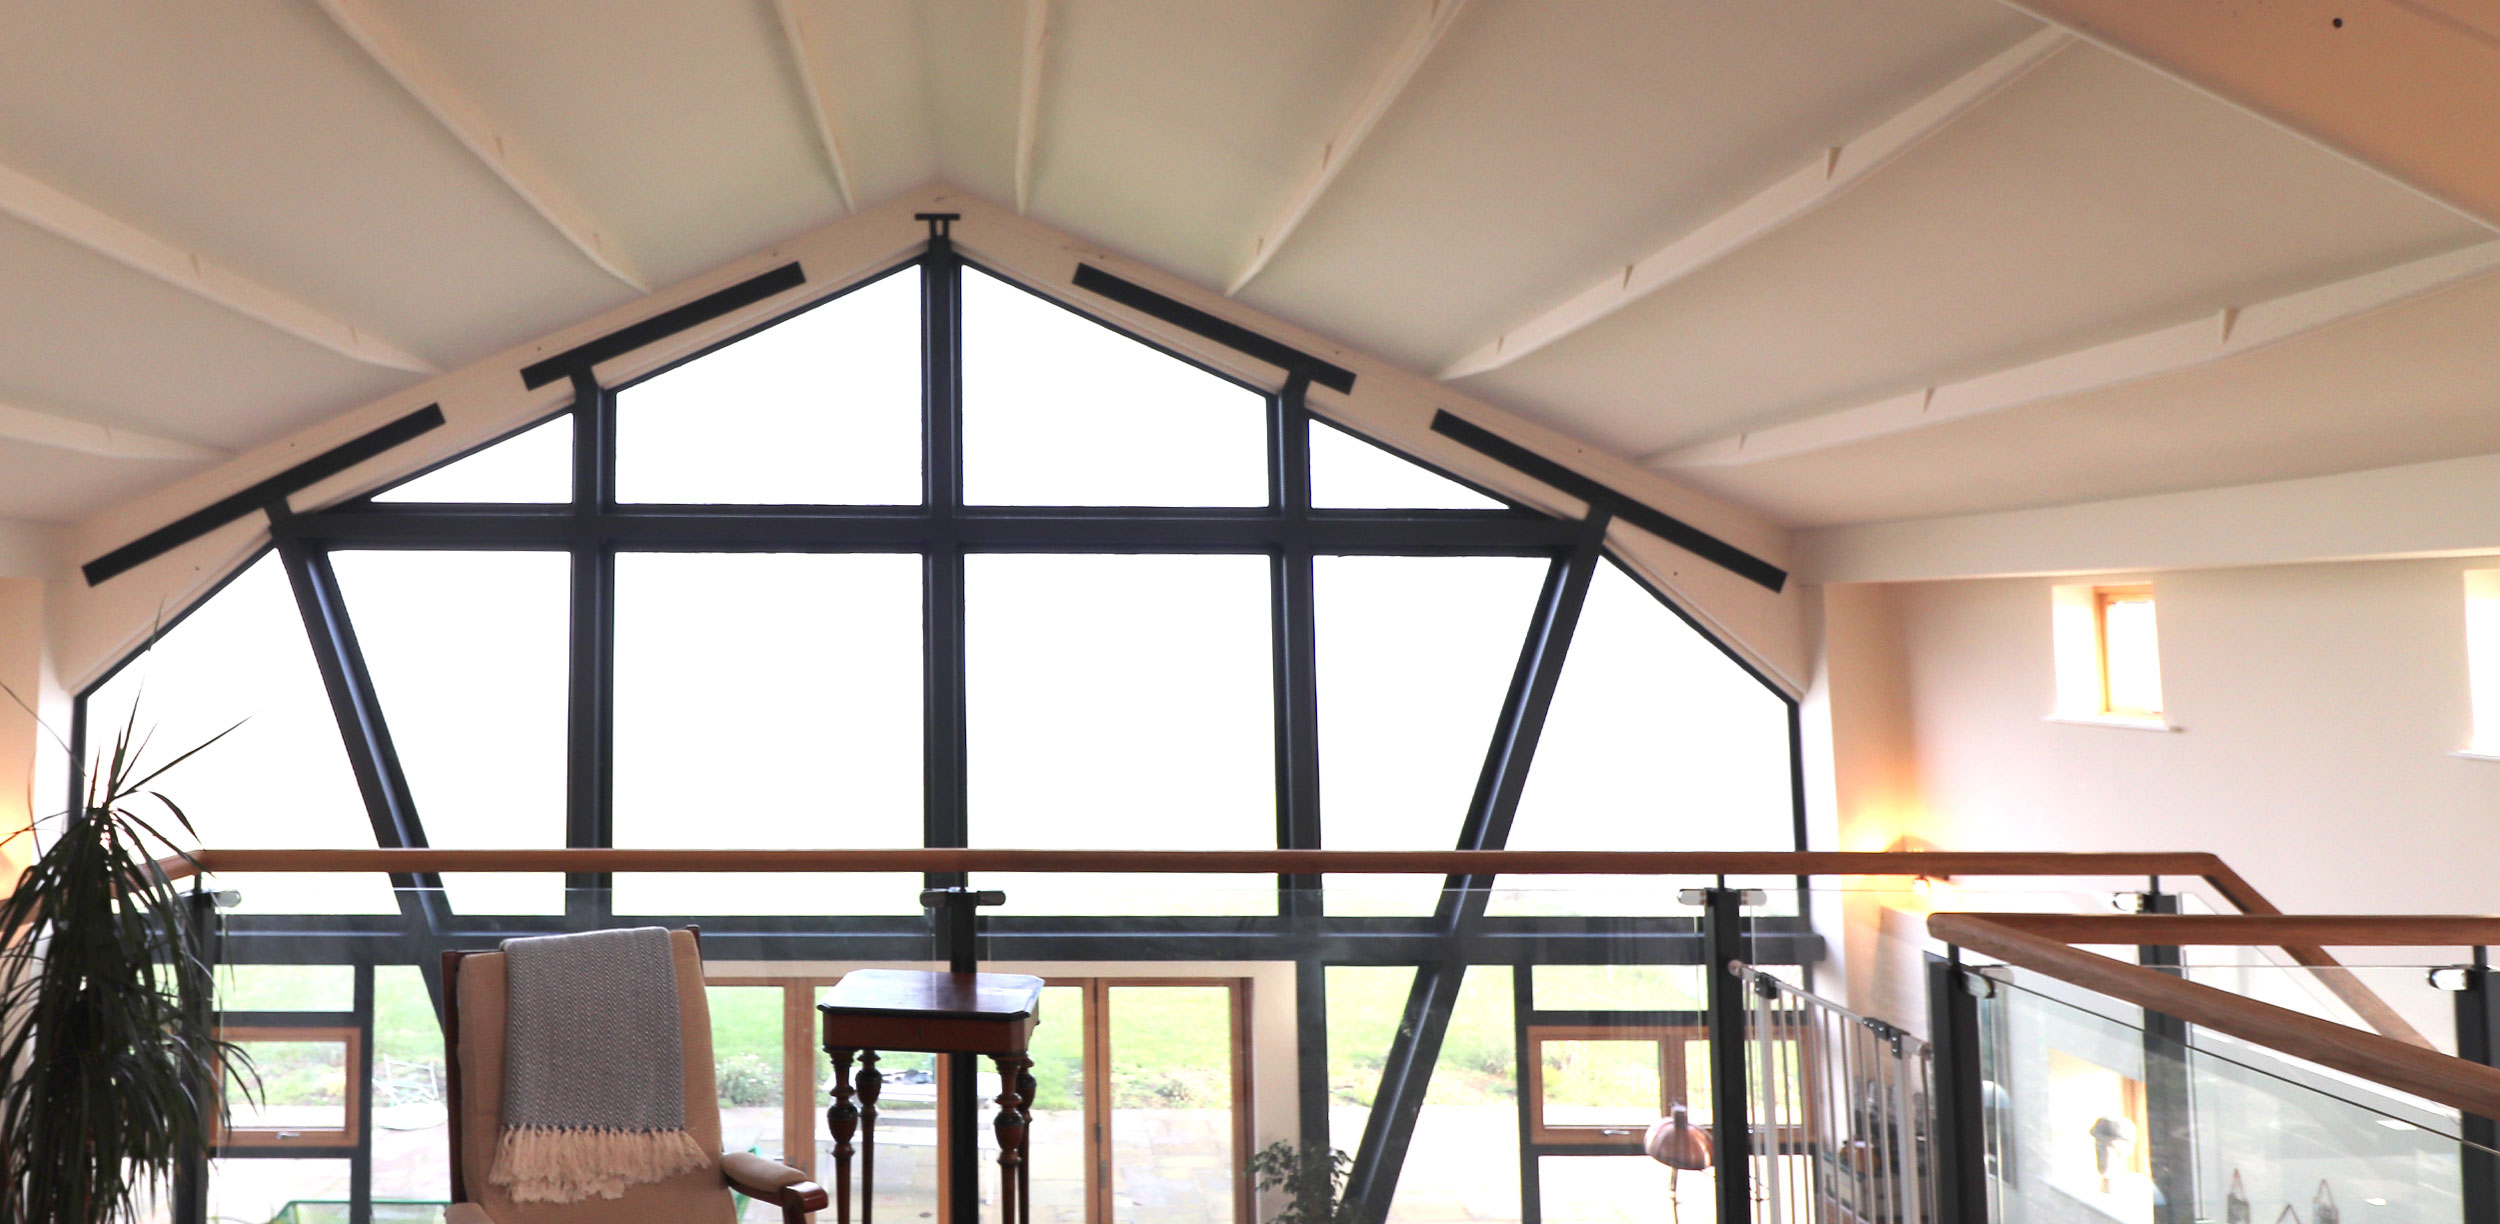 internal view of glazed gable end of barn conversion to dwelling in suffolk